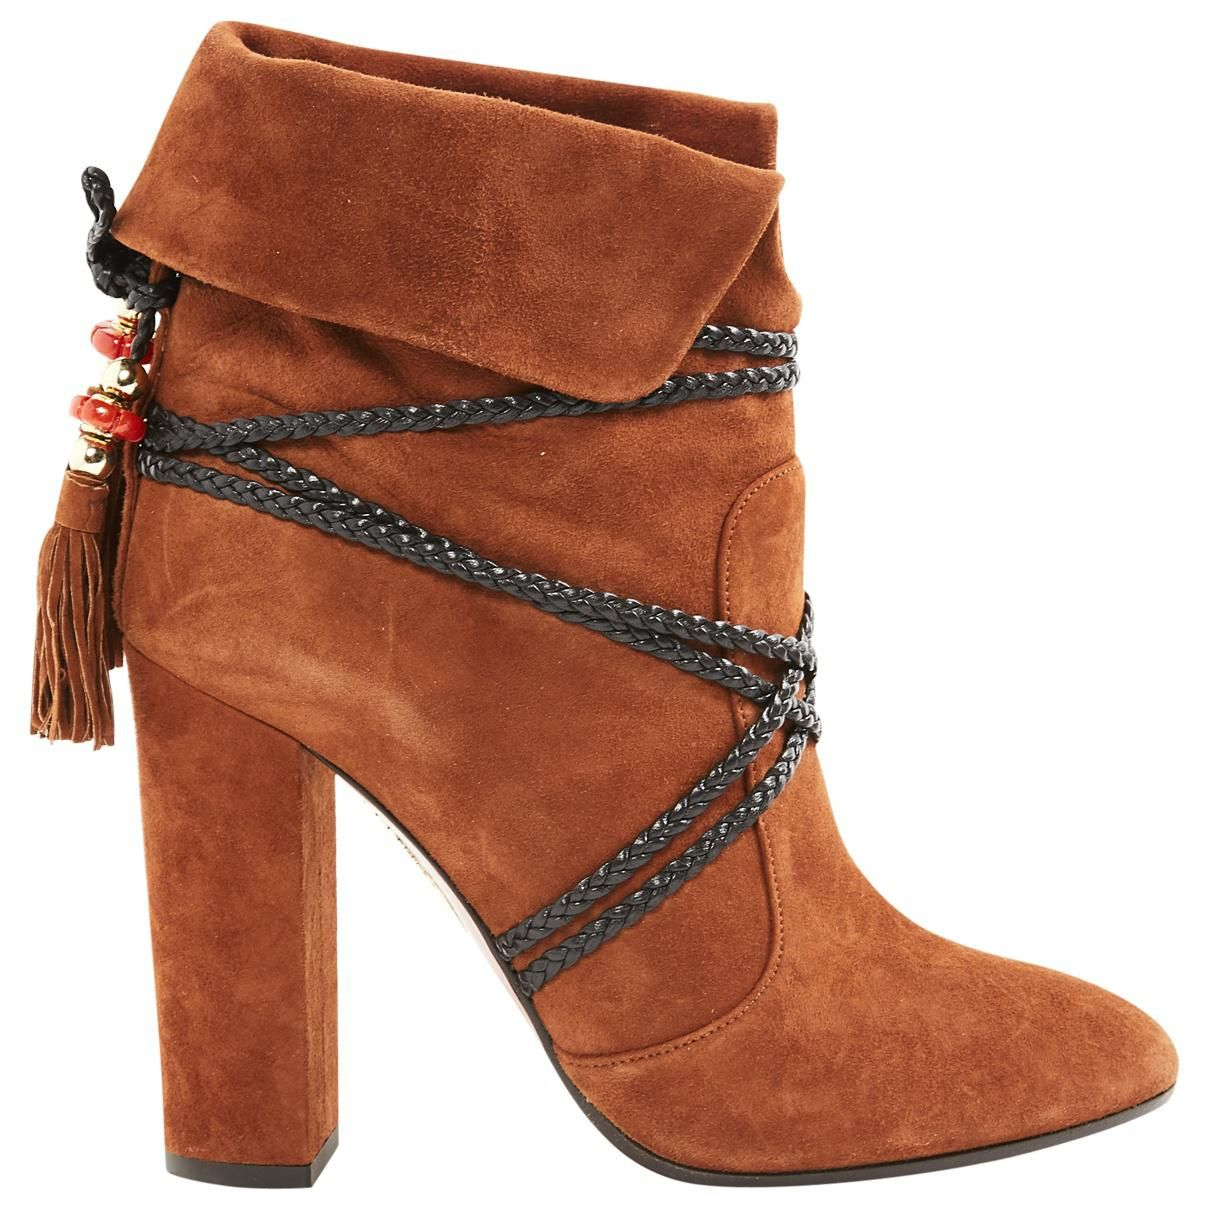 Aquazzura n Brown Suede Ankle Boots | Brown suede ankle